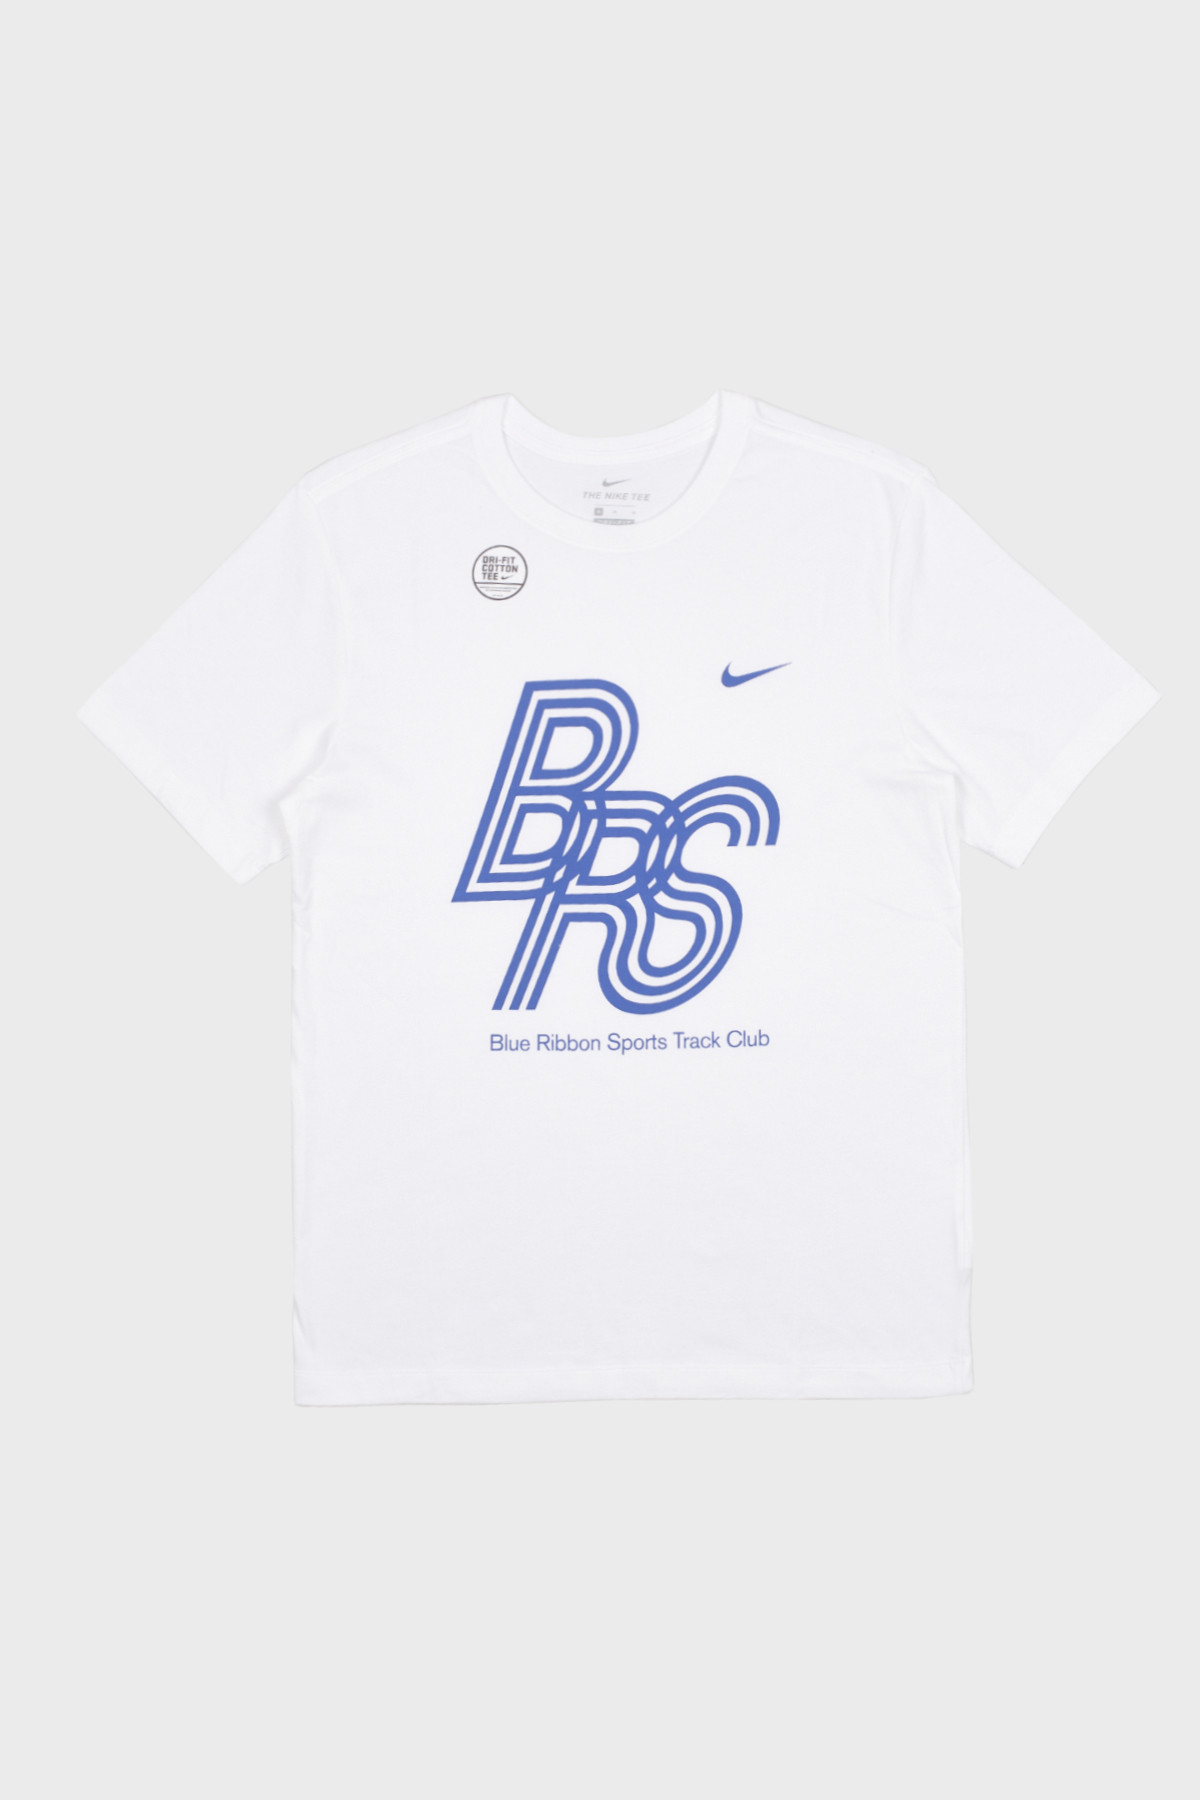 NIKE - DRI-FIT TEE BRS - WHITE